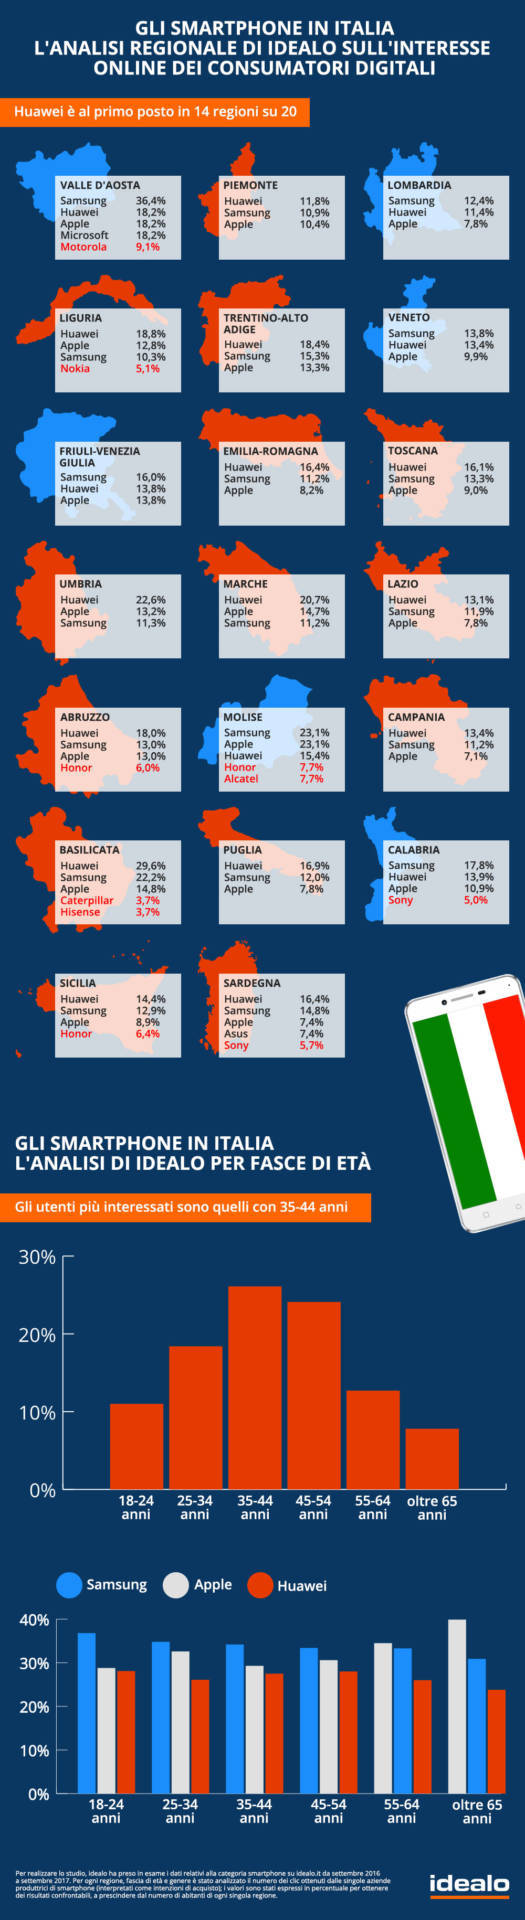 www.italiamac.it smartphone interesse per regione eta e genere secondo idealo it infografica idealo smartphone in italia Smartphone: interesse per regione, età e genere secondo idealo.it